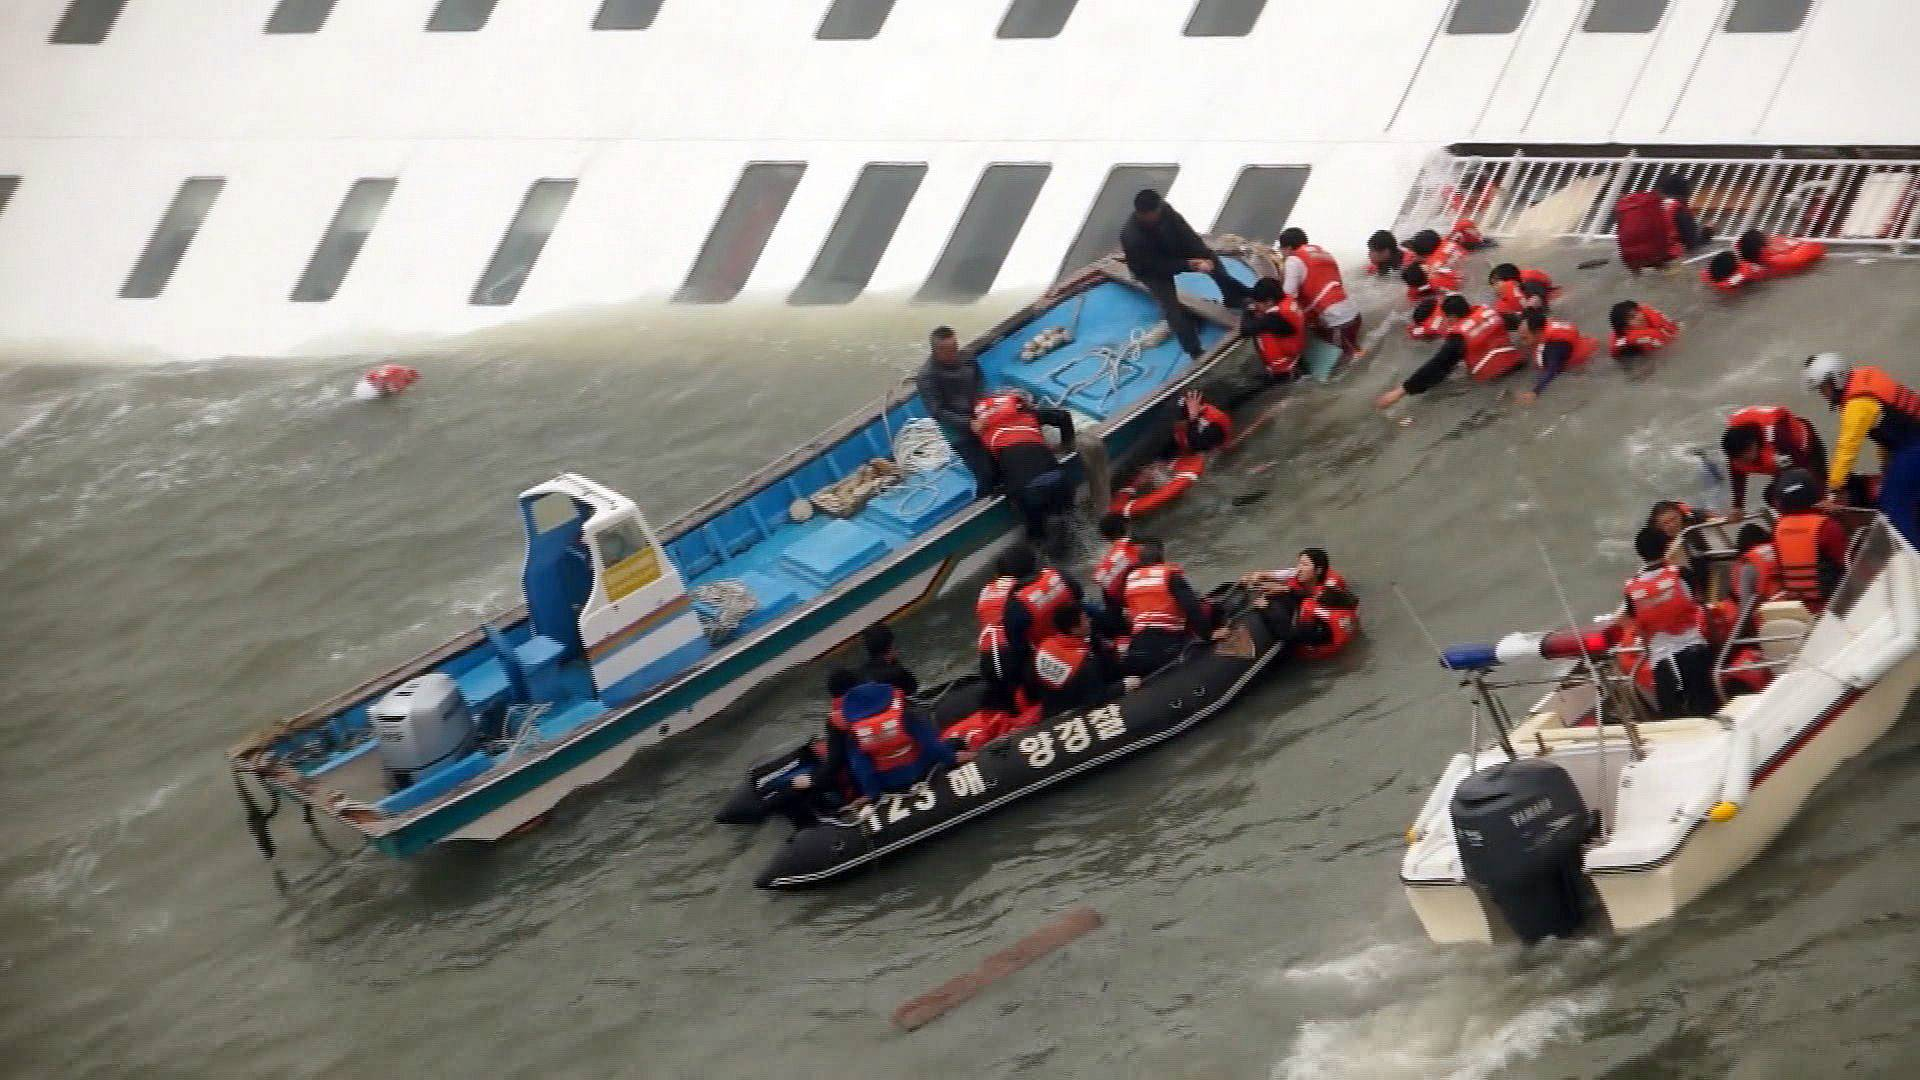 Passengers from the Sewol, a South Korean ferry sinking off South Korea's southern coast, are rescued by South Korean Coast Guard personnel in the water off the southern coast near Jindo, south of Seoul.